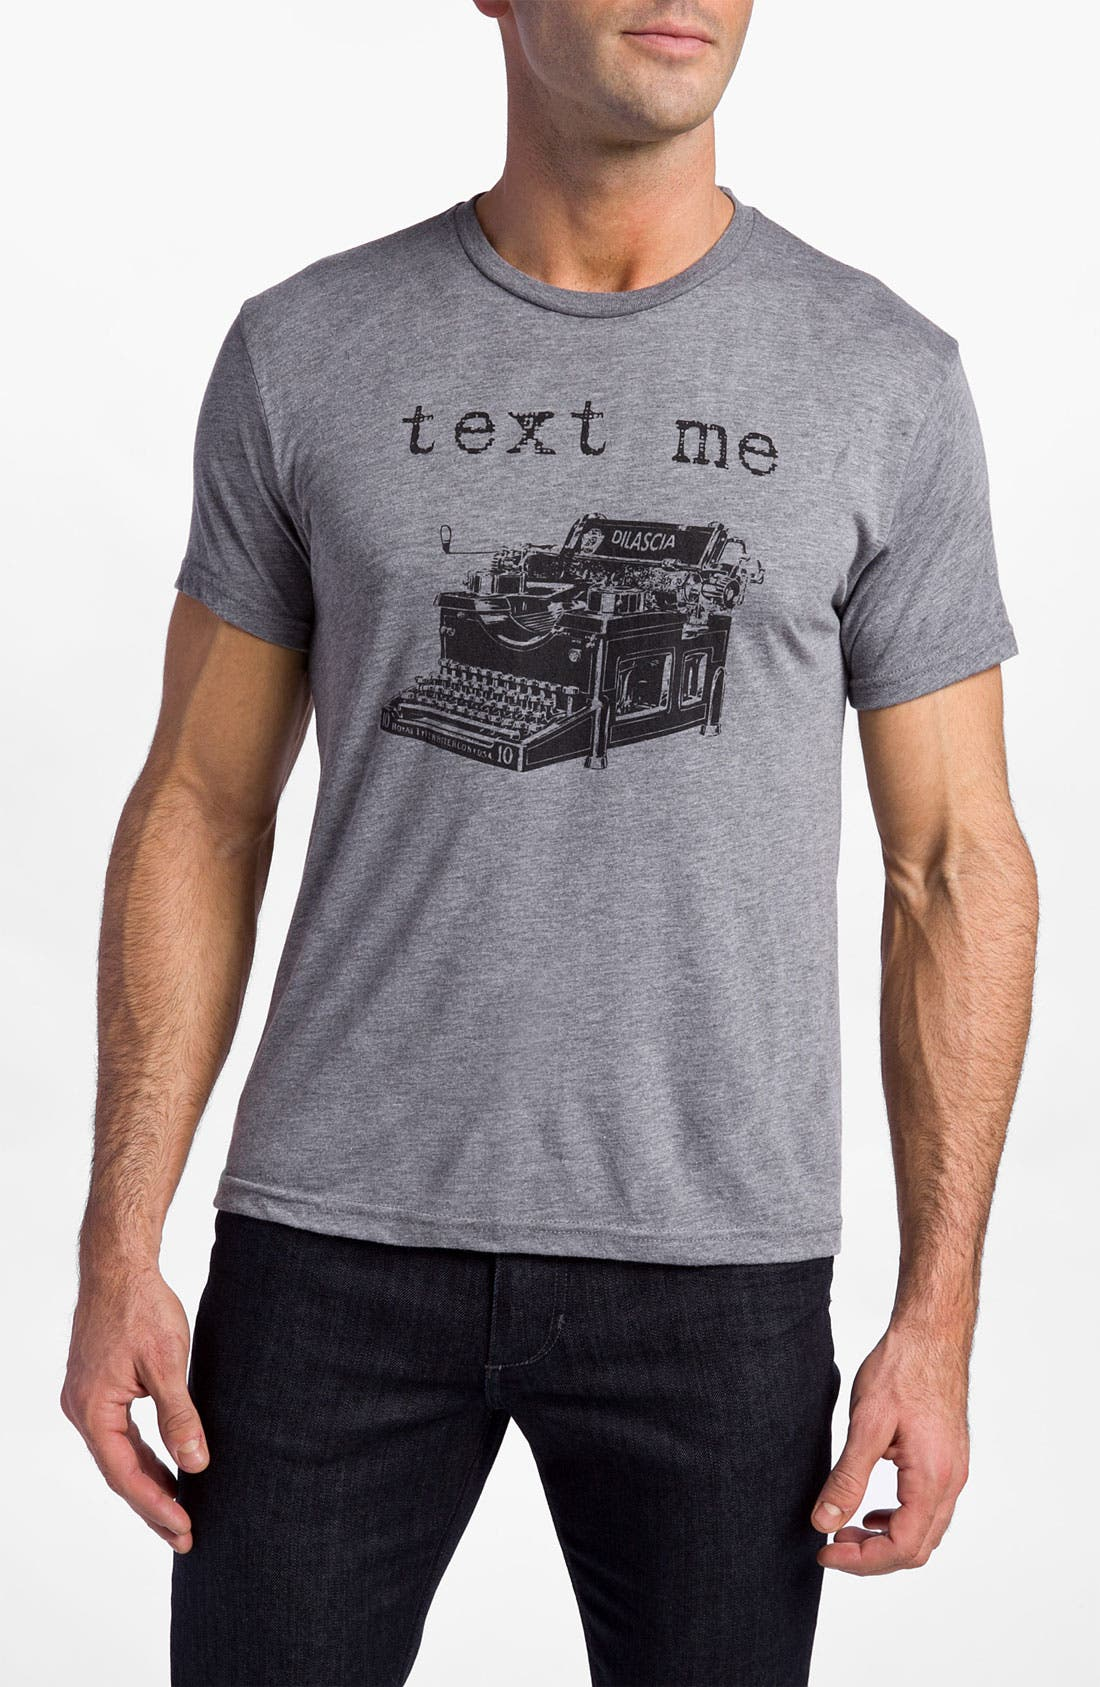 Alternate Image 1 Selected - DiLascia 'Text Me' T-Shirt